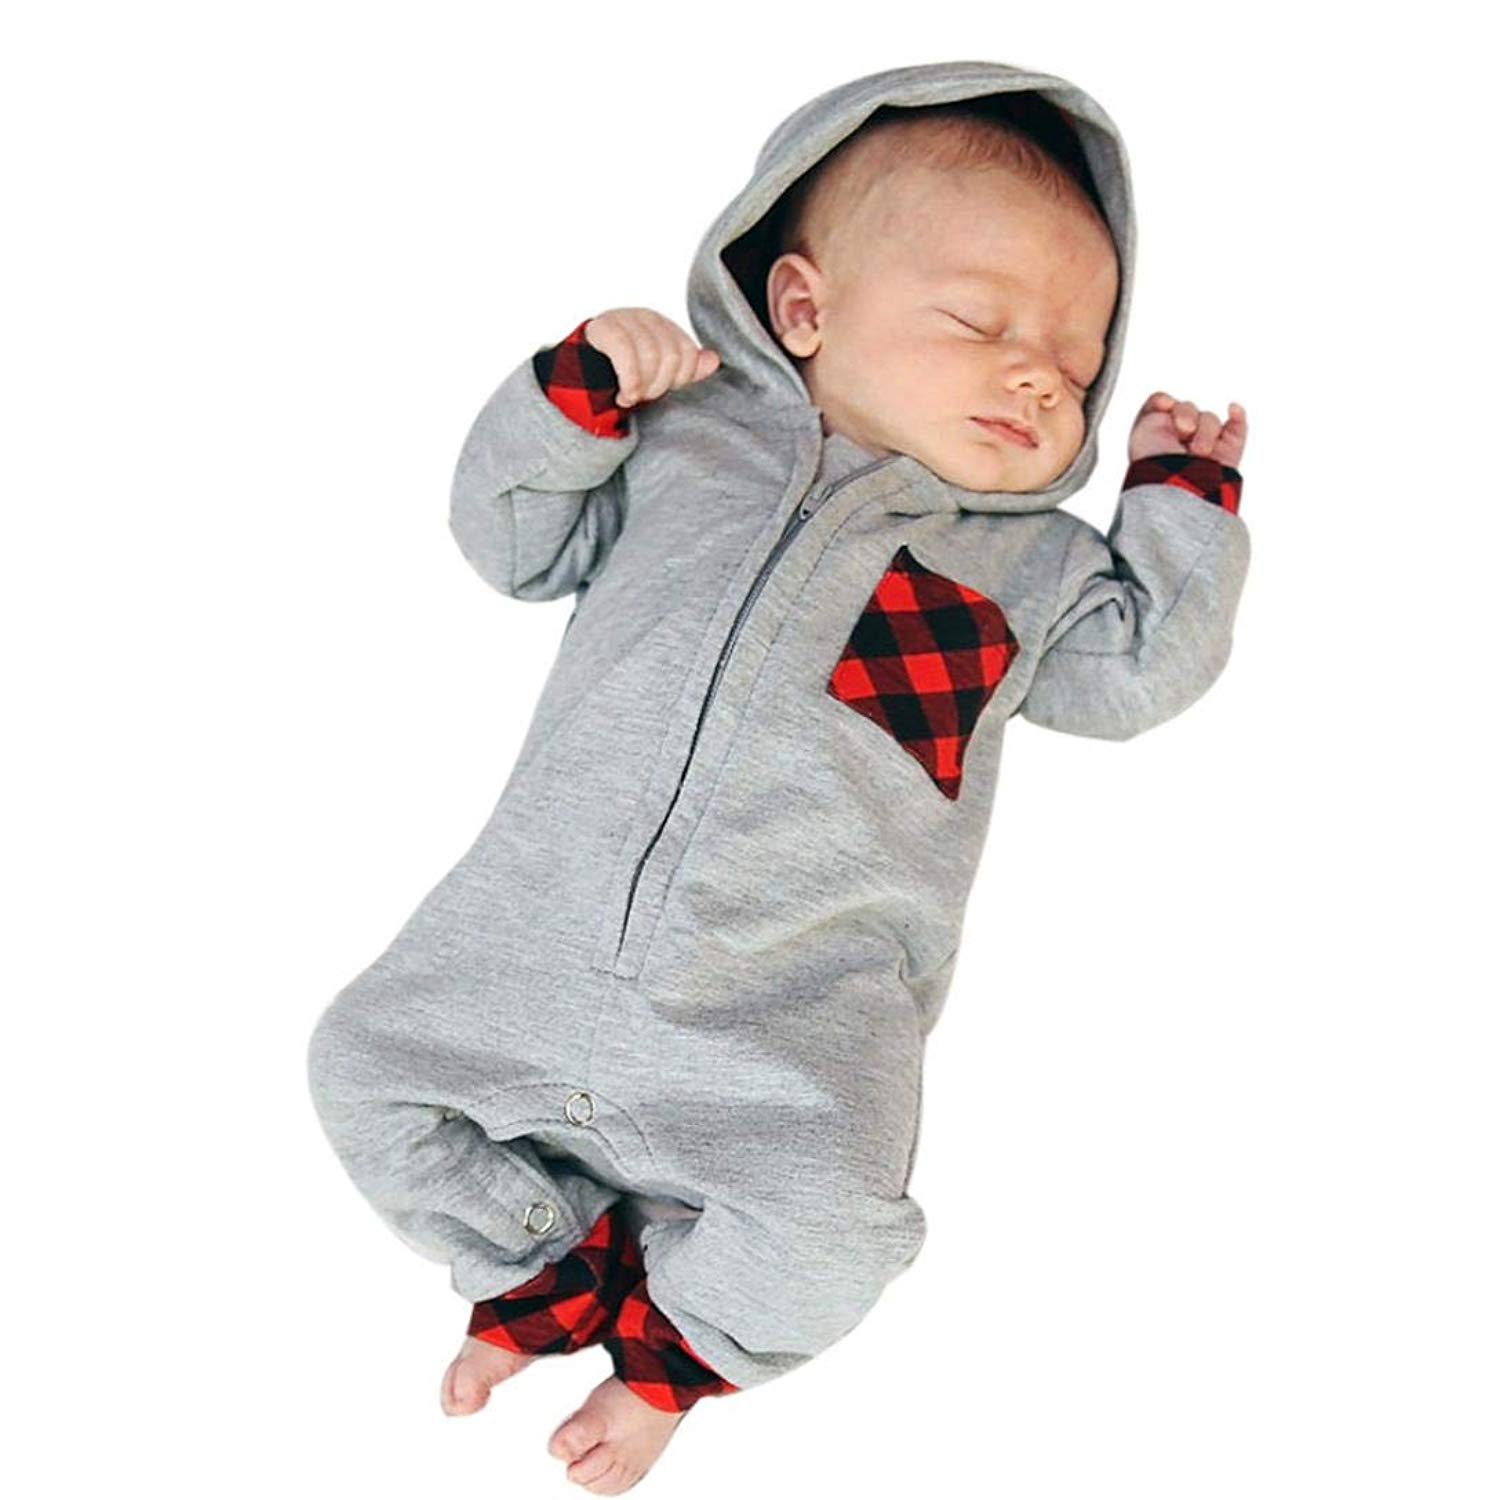 Makaor Newborn Infant Baby Boy Girl Hooded Romper Jumpsuit Plaid Zipper Outfits Clothes